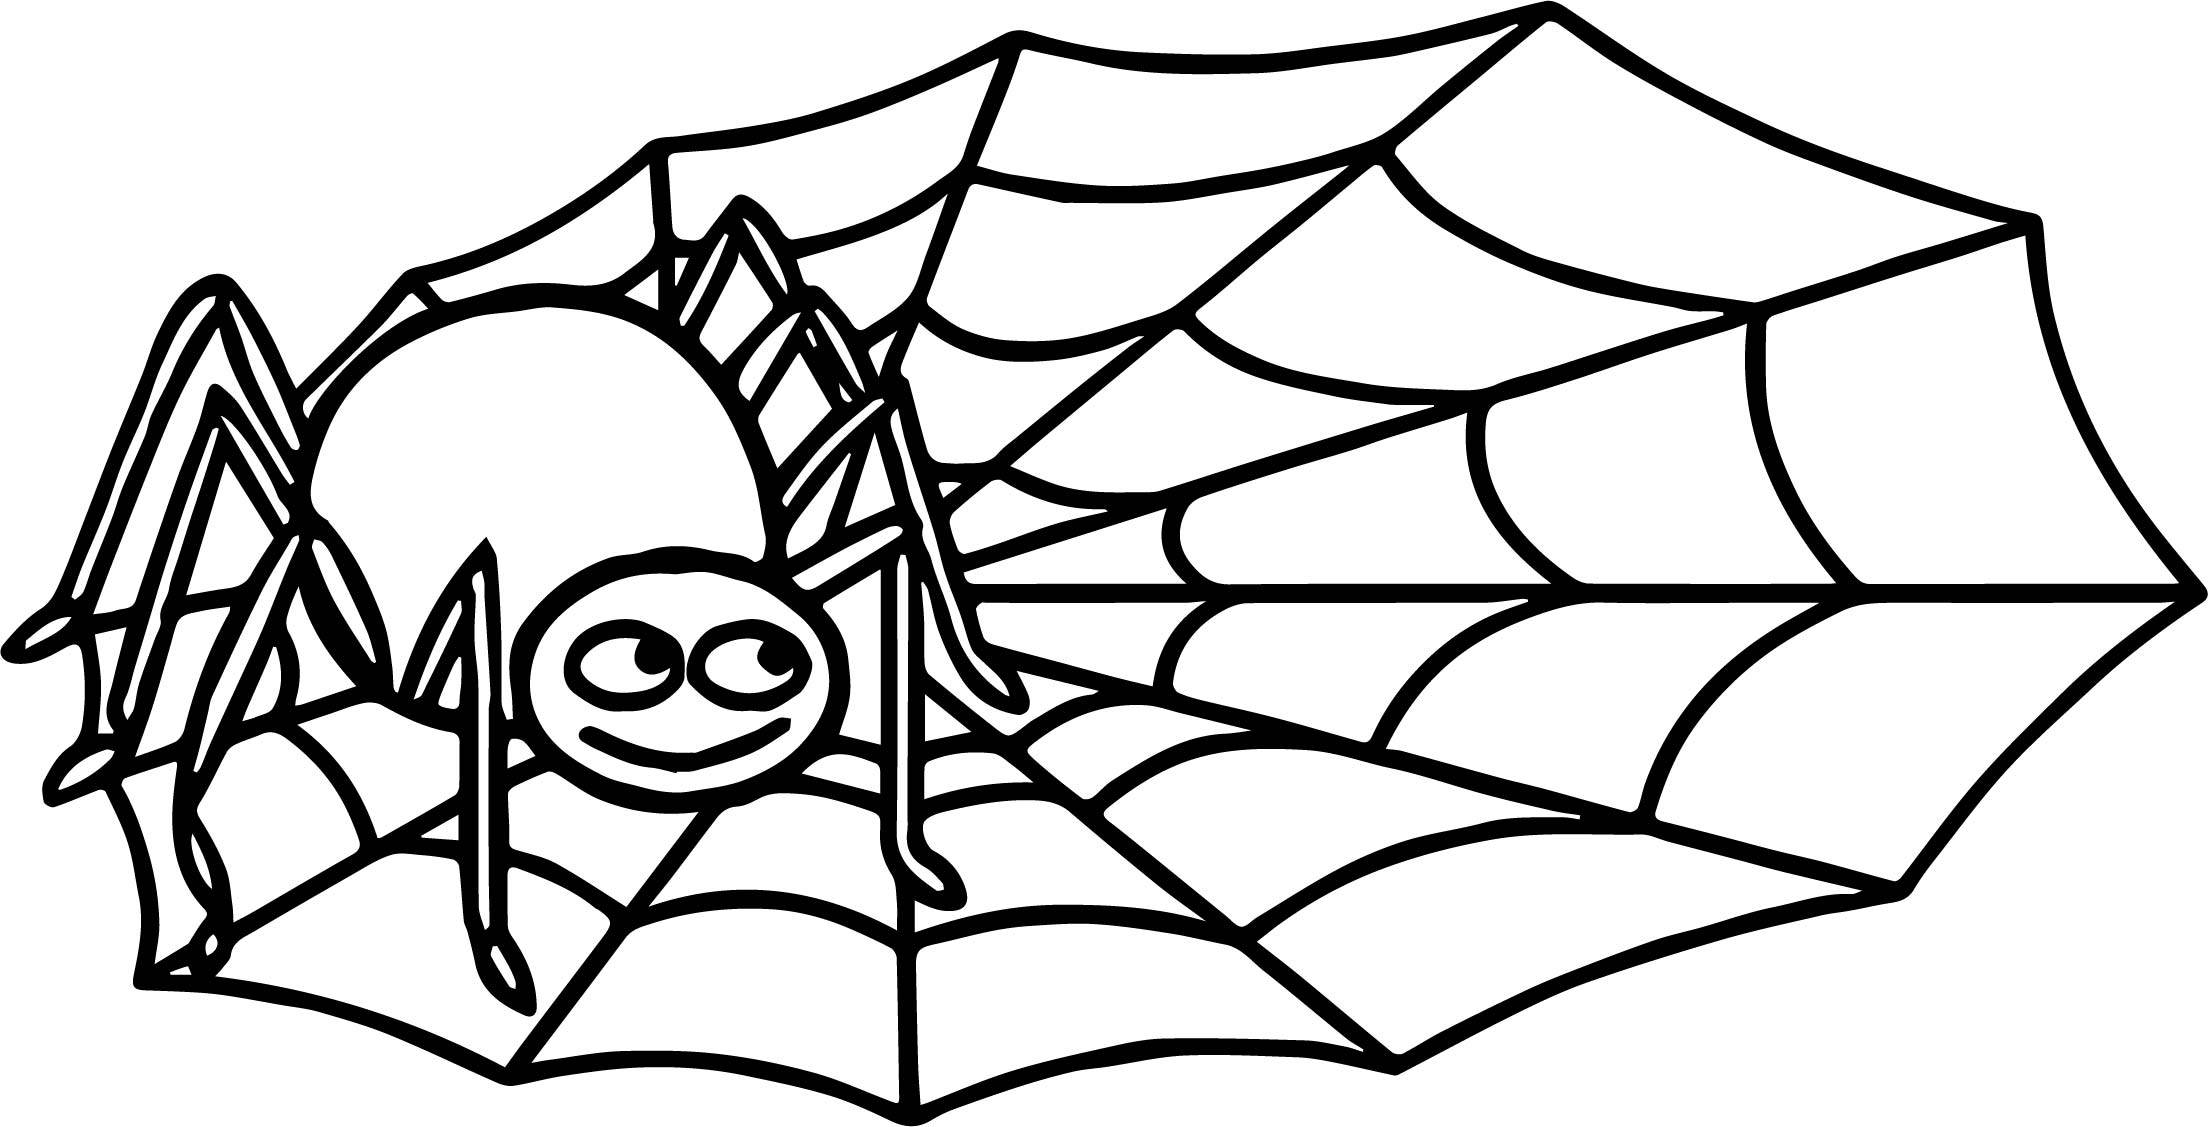 coloring pages tarantula - photo#23